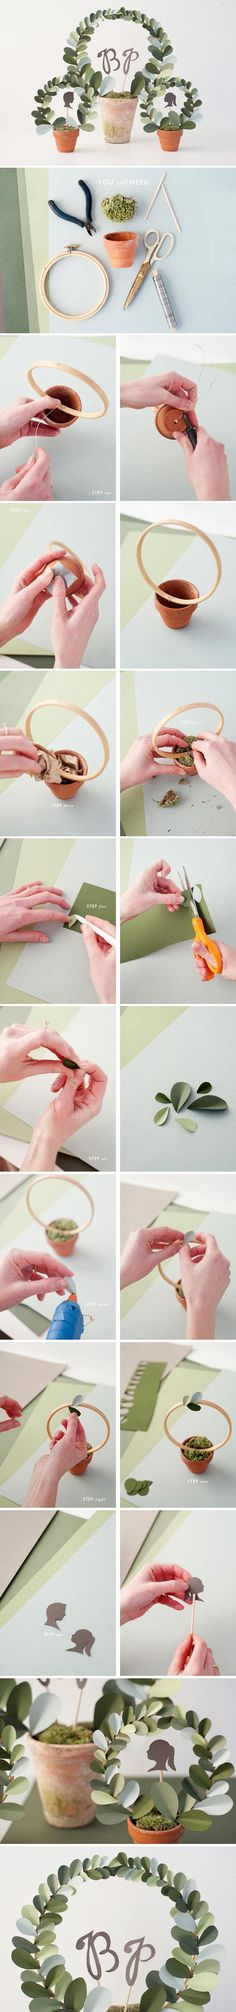 Paper leaf topiary diy